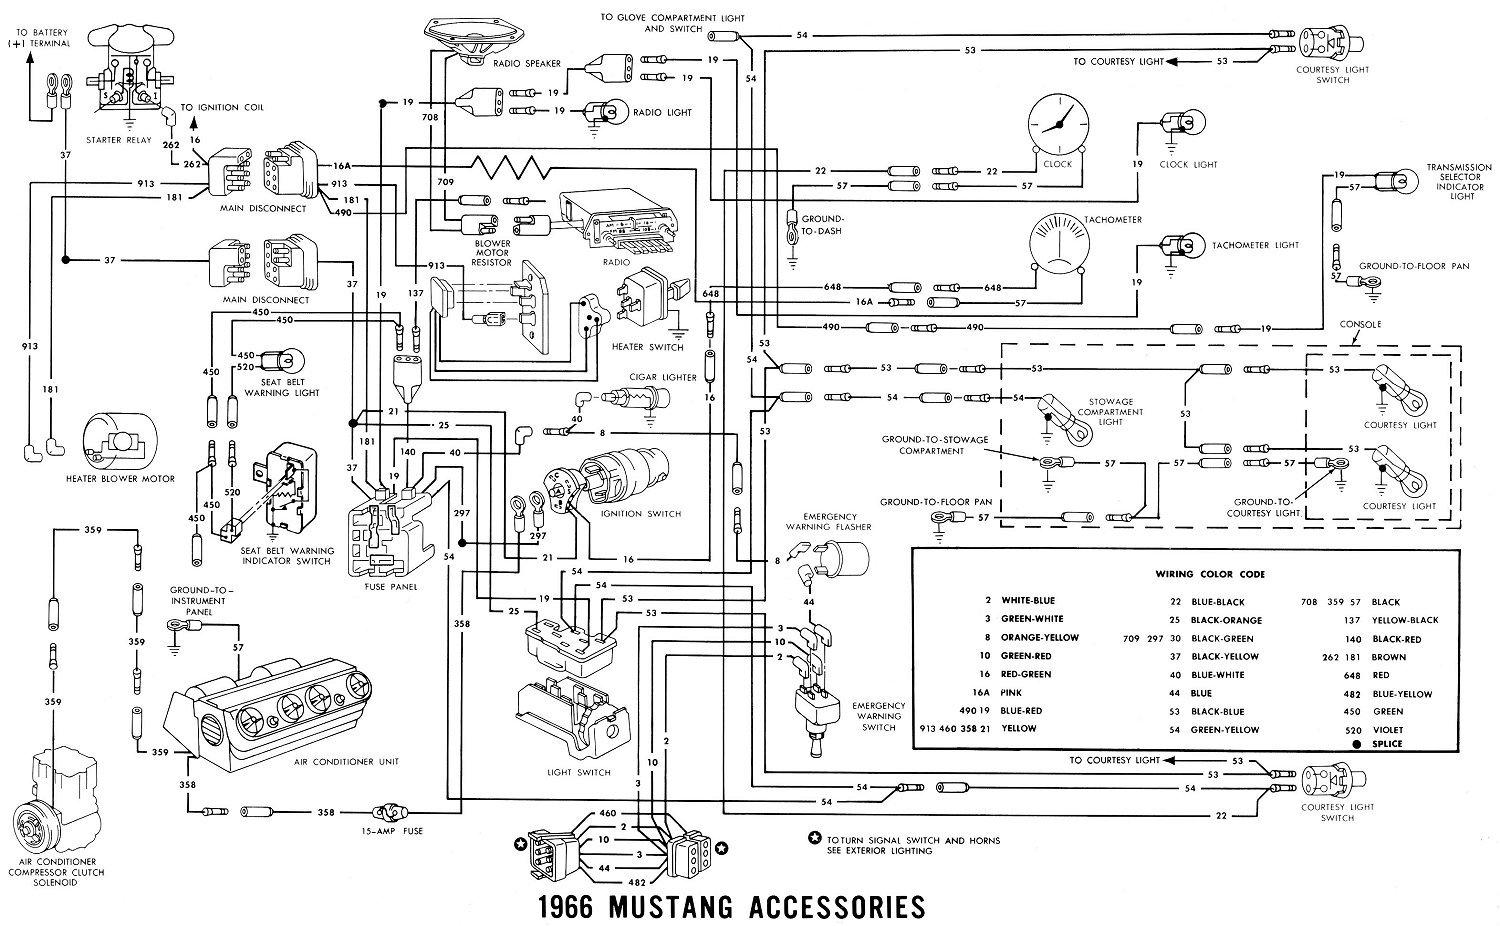 1972 Ford Maverick Wiring Diagram Worksheet And Starter For 1990 Bronco 1970 Mustang Detailed Schematics Rh Antonartgallery Com 1973